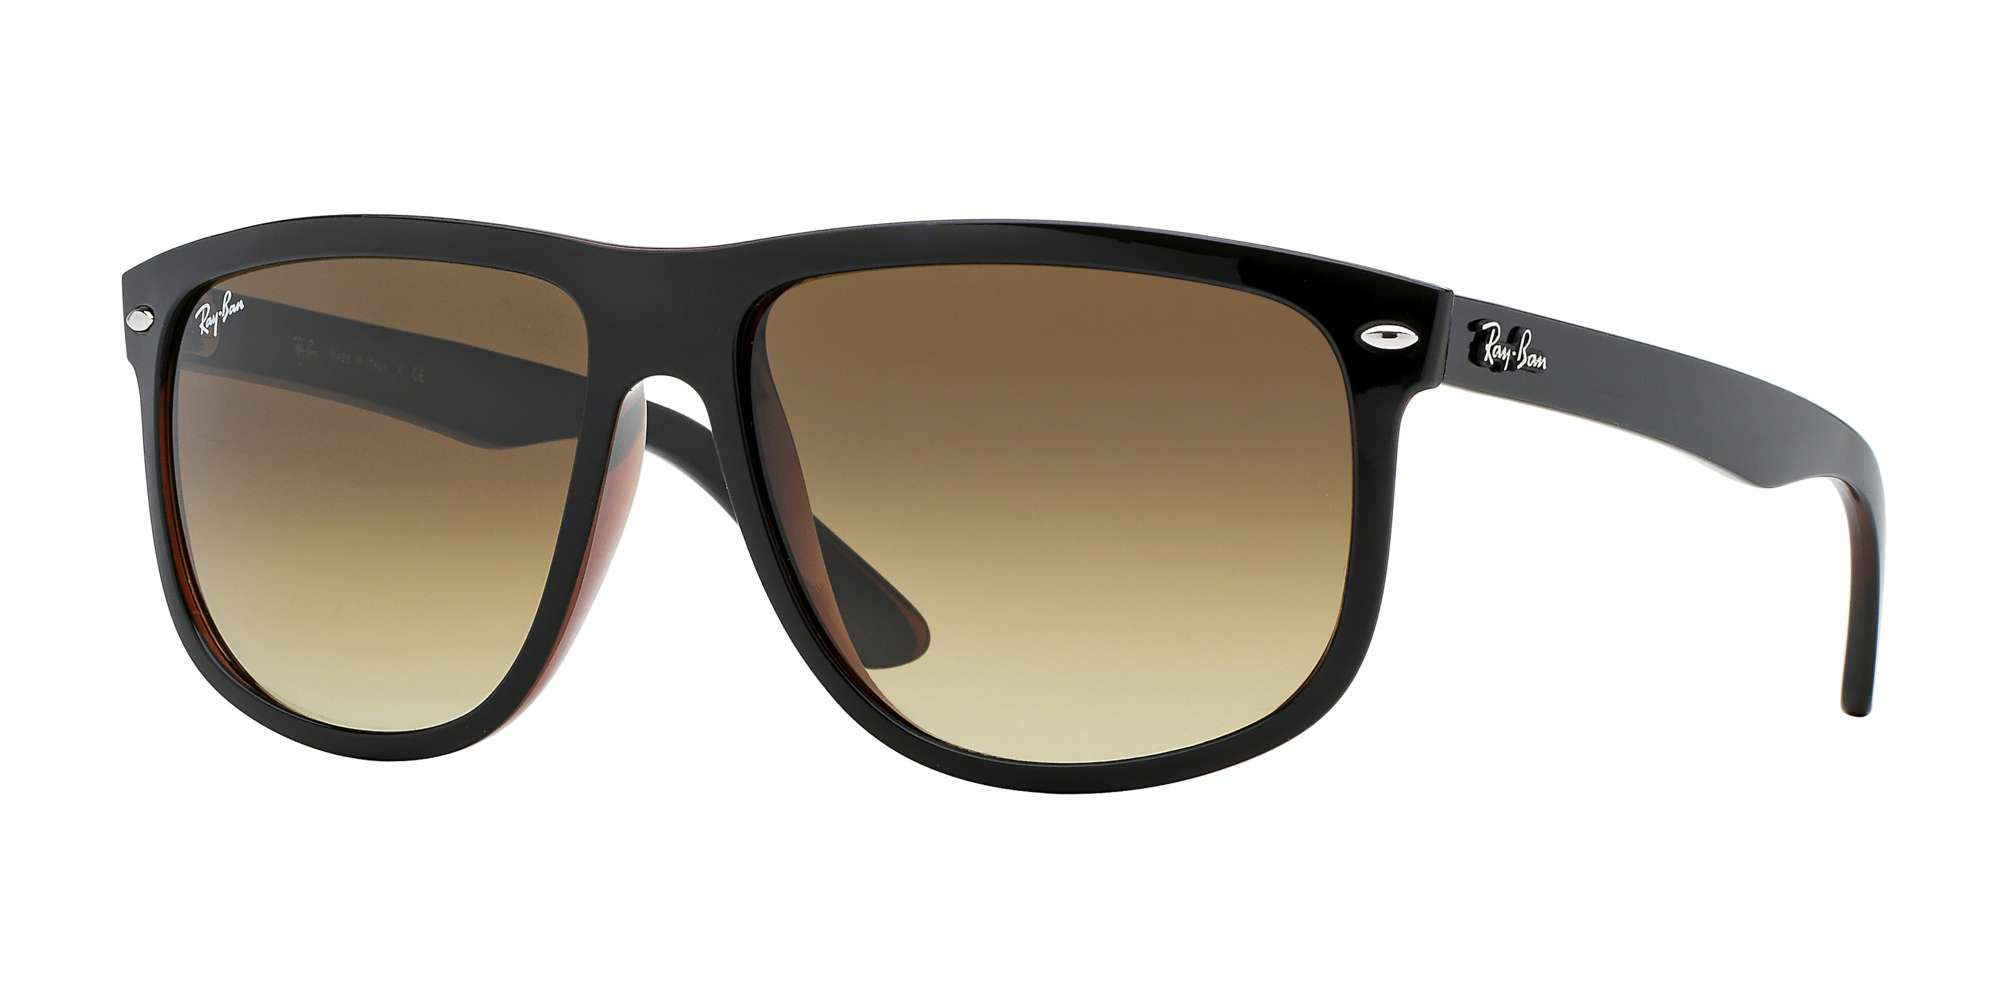 TOP BLACK ON BROWN / BROWN GRADIENT DARK BROWN lenses